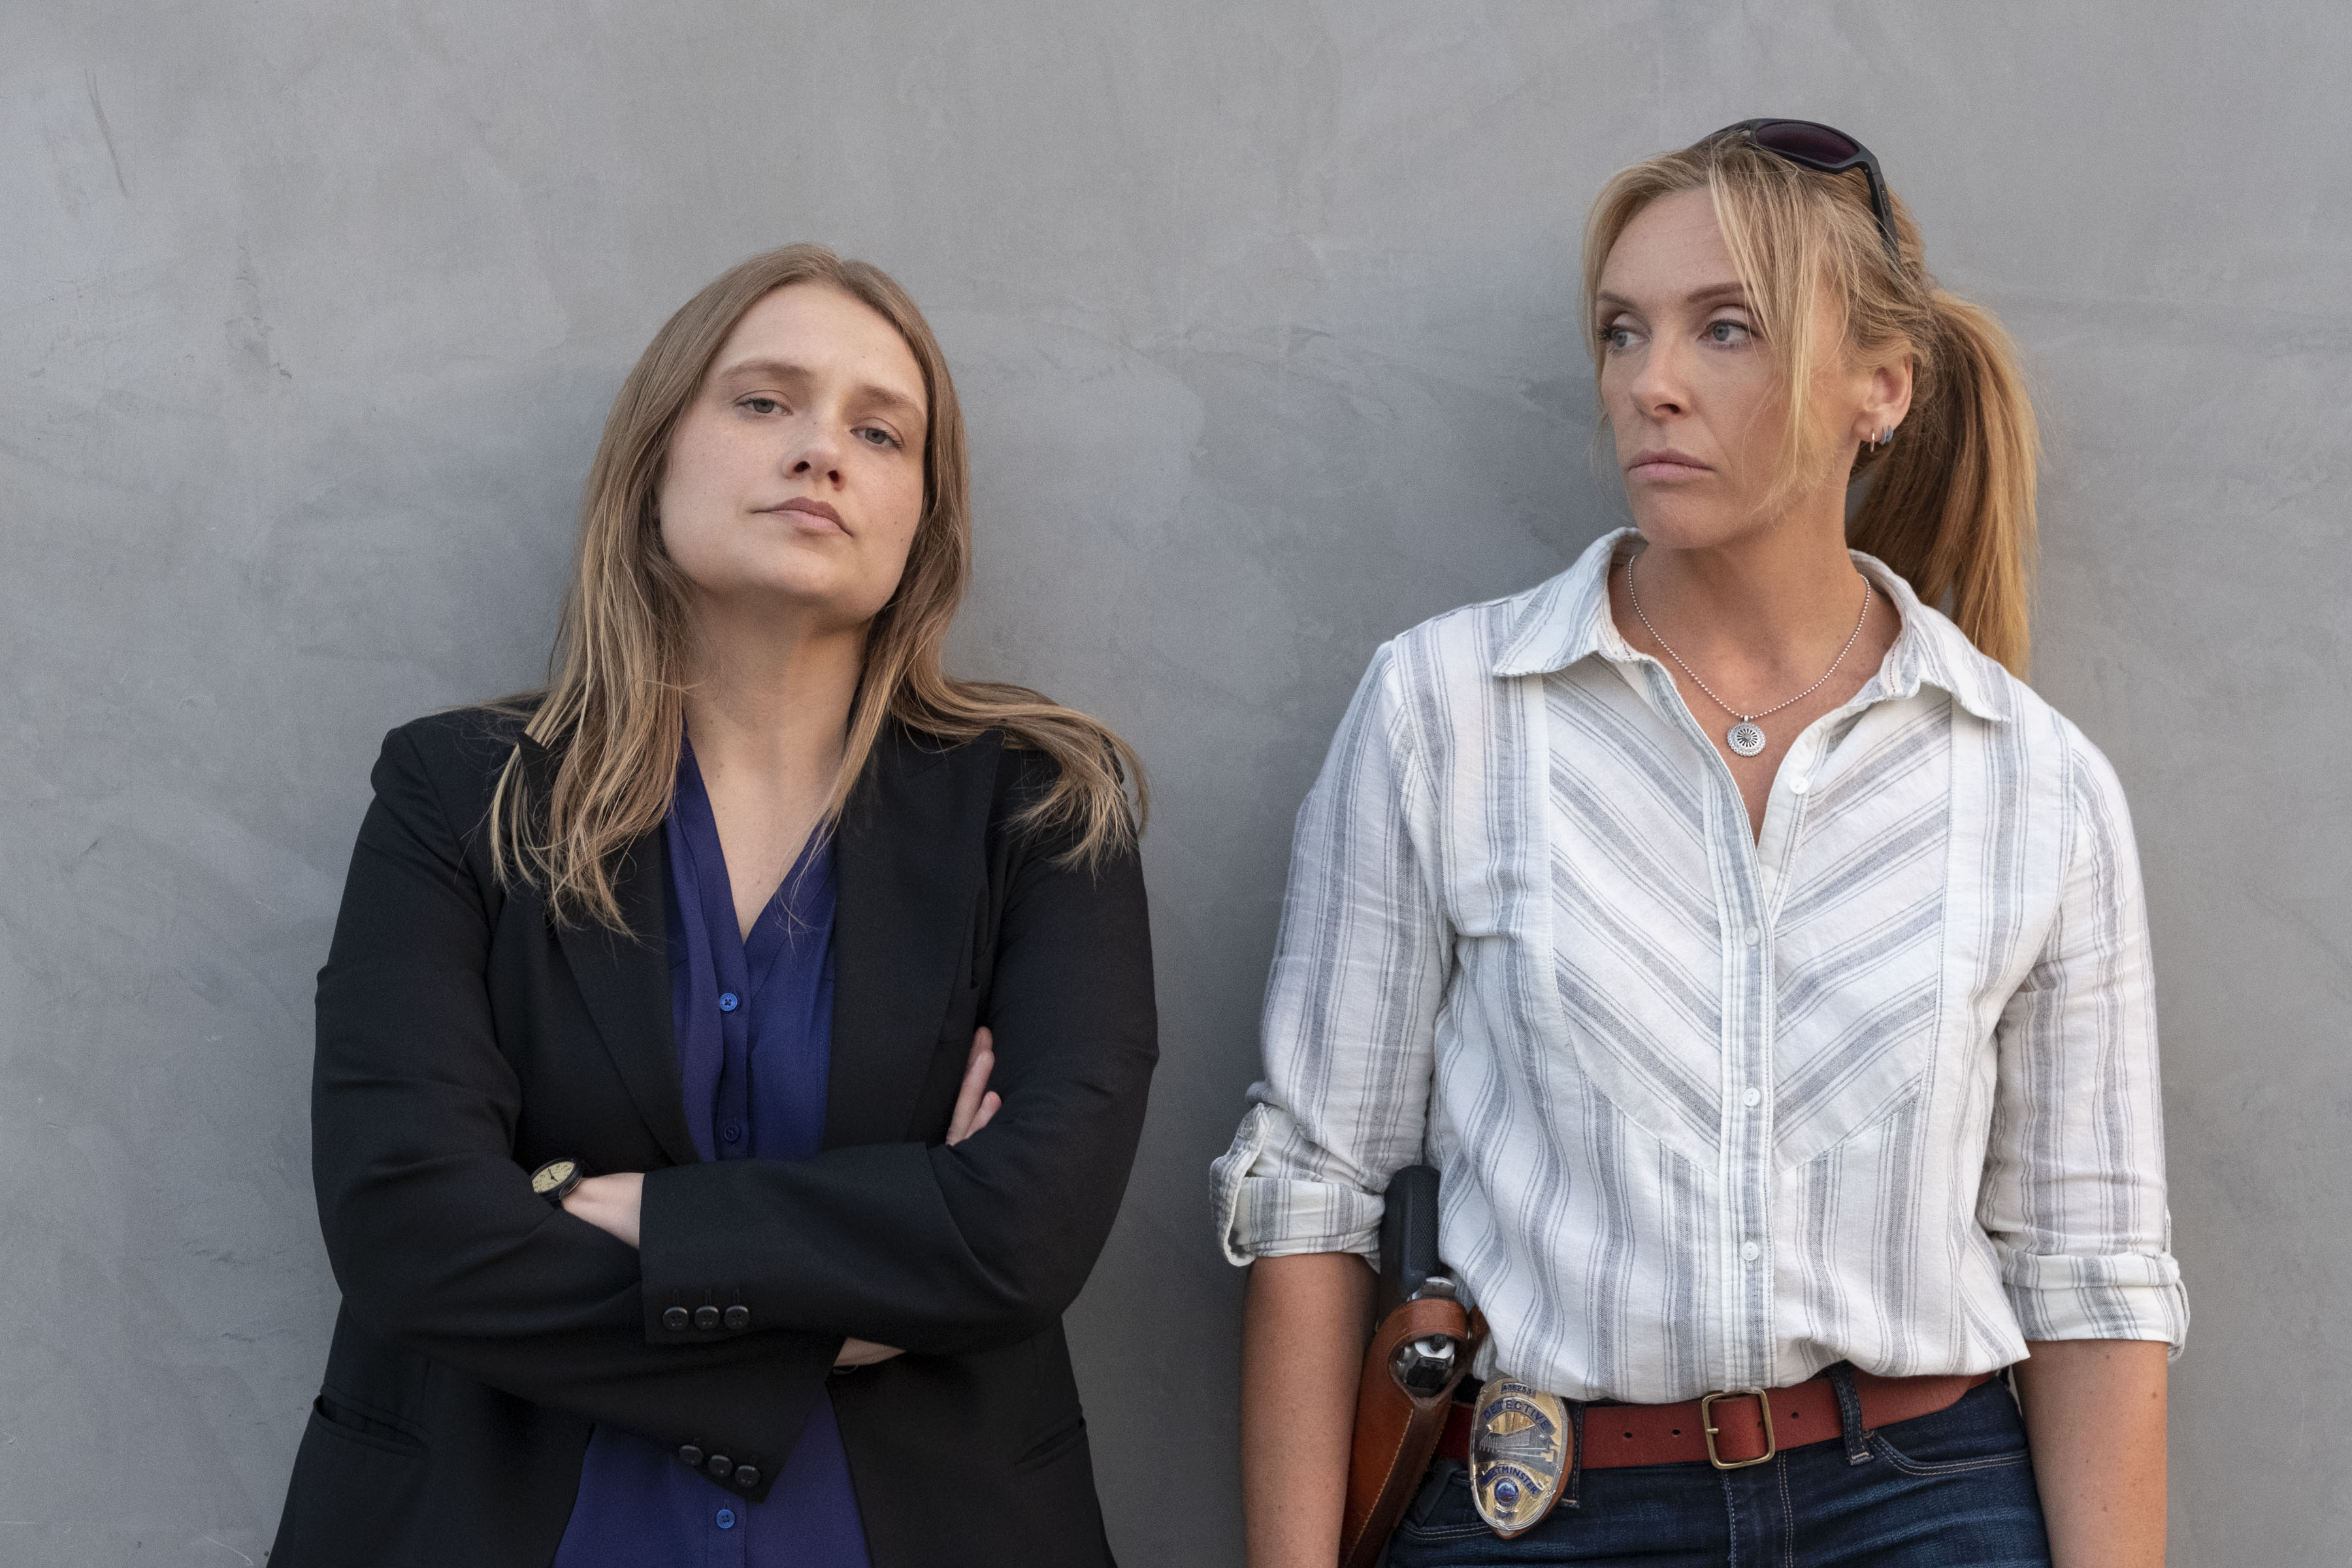 Merritt Wever and Toni Collette in 'Unbelievable'